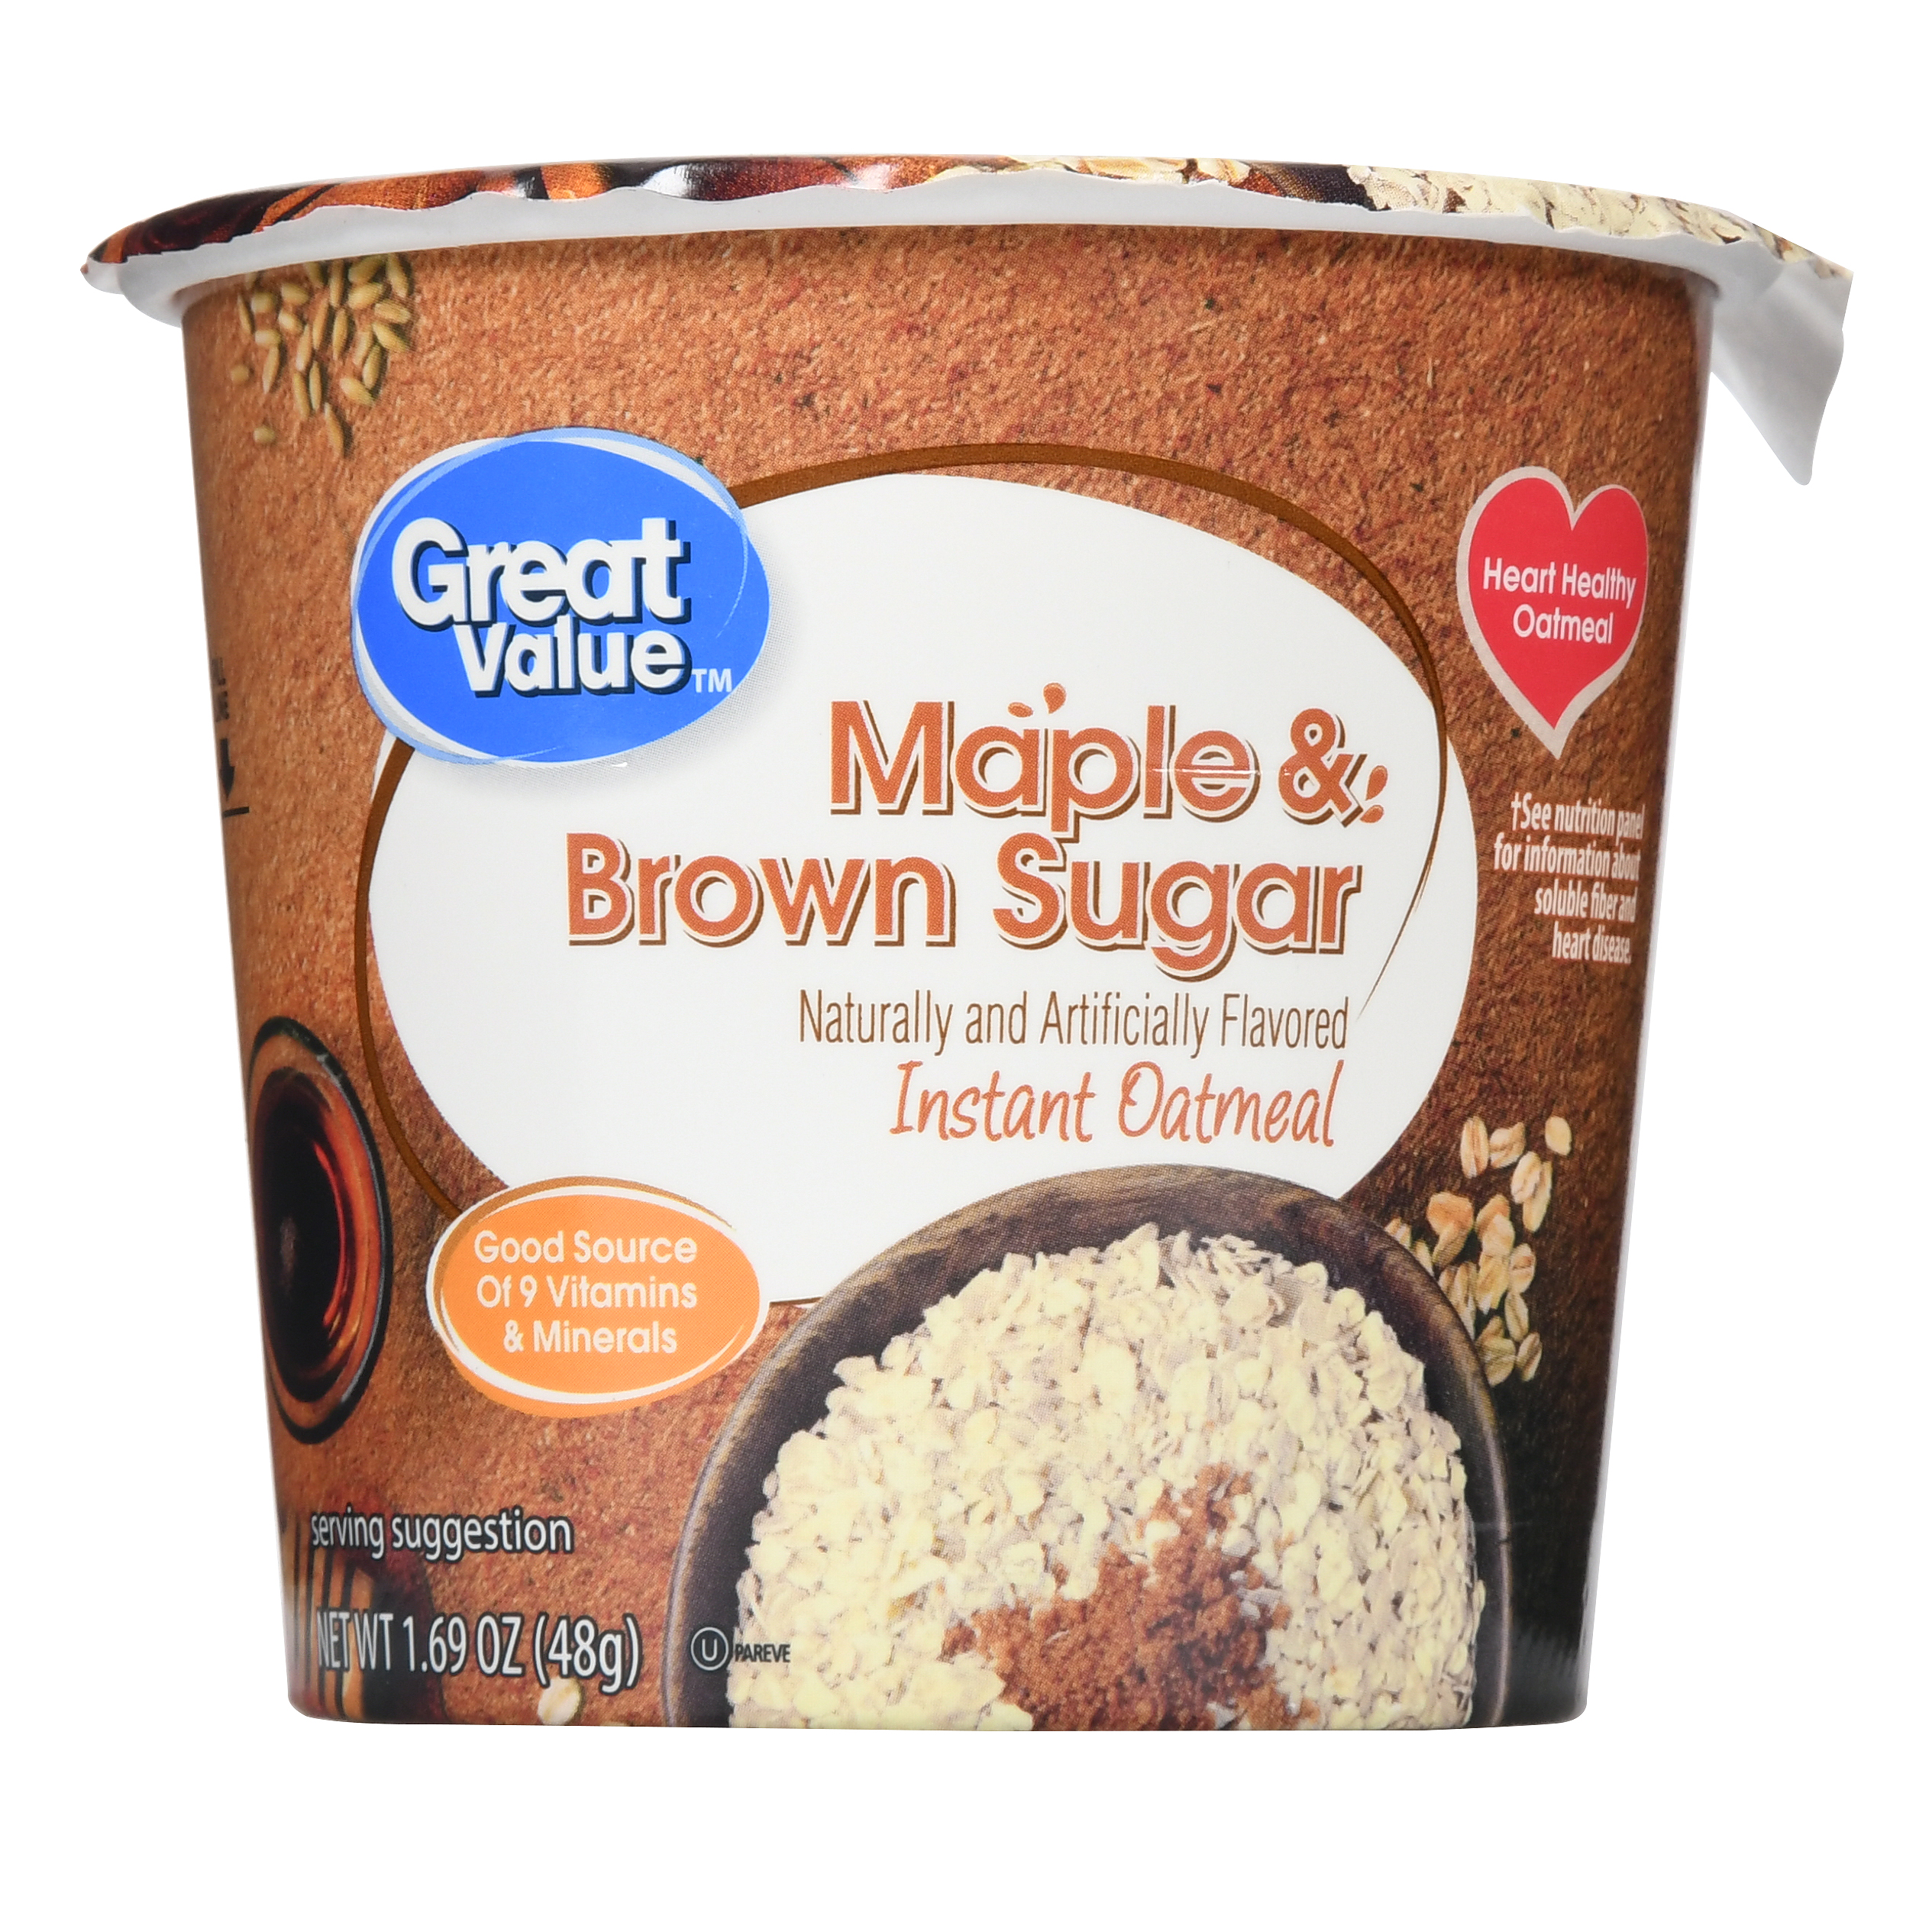 Great Value Instant Oatmeal Cup, Maple & Brown Sugar, 1.69 oz